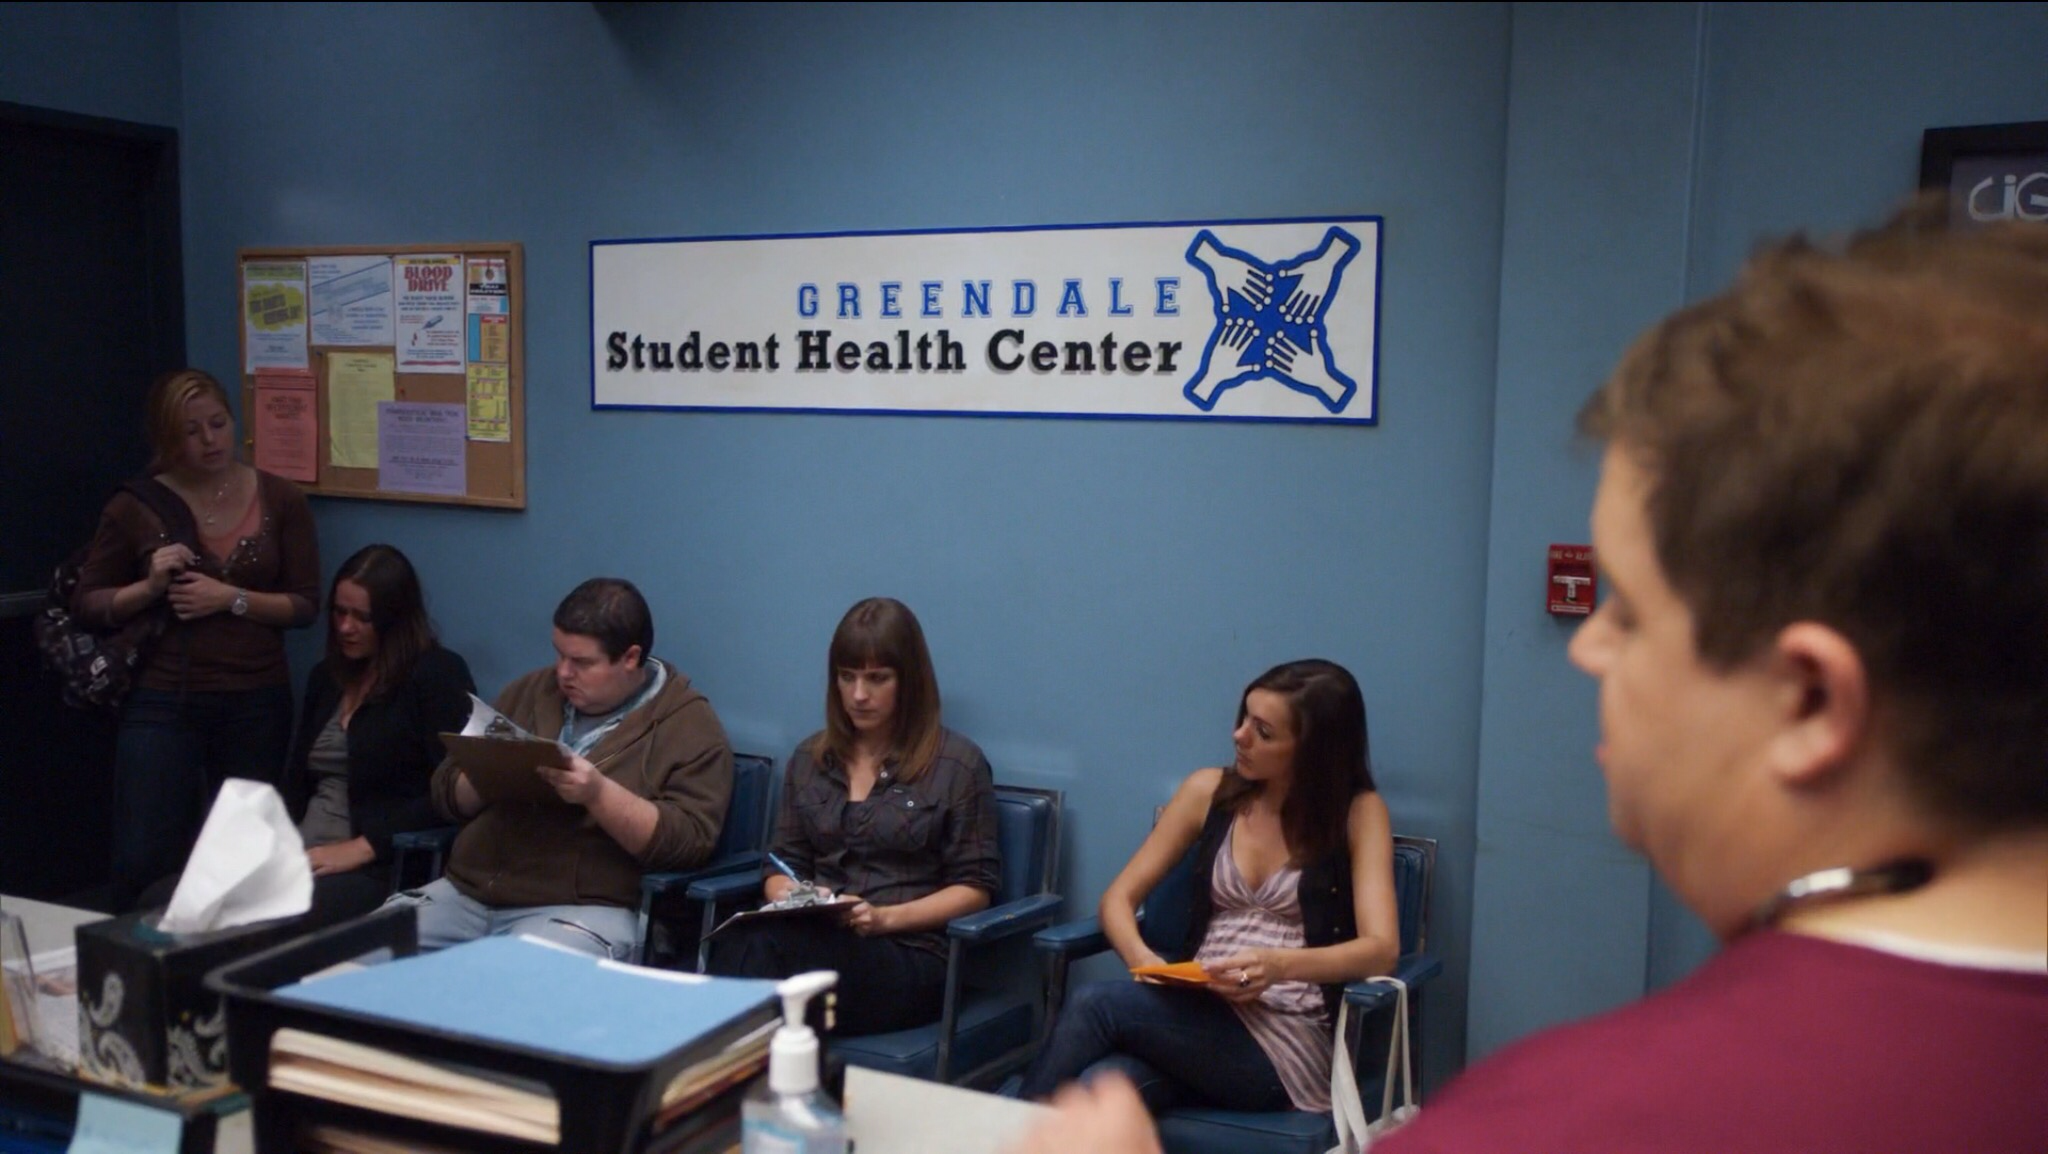 Greendale Student Health Center